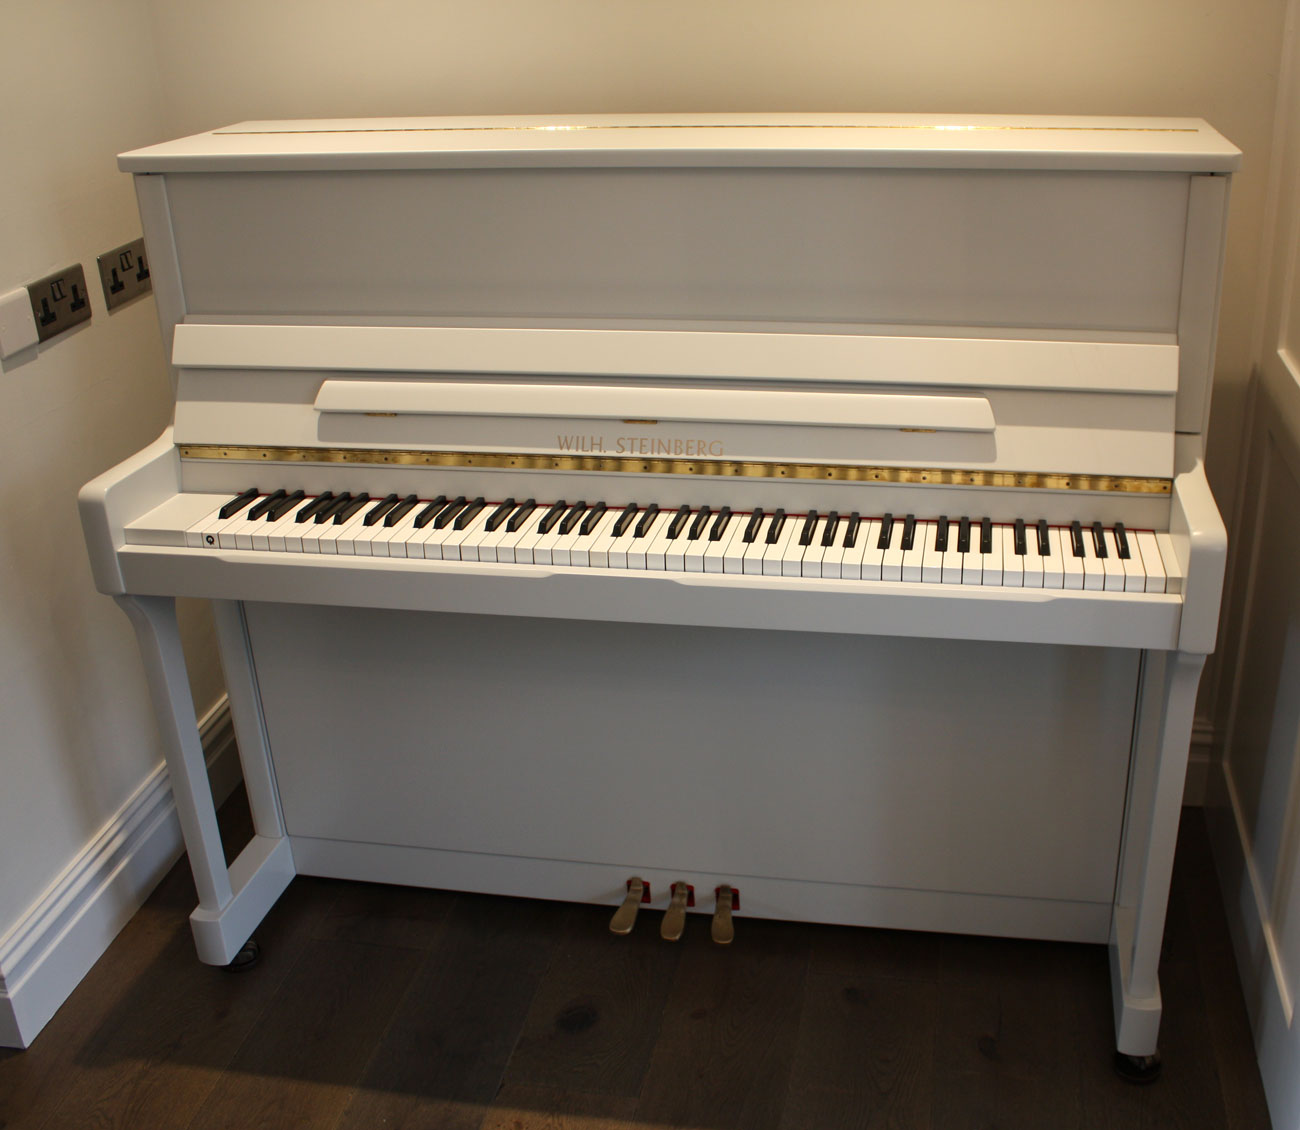 Wilh. Steinberg Painted Upright Piano